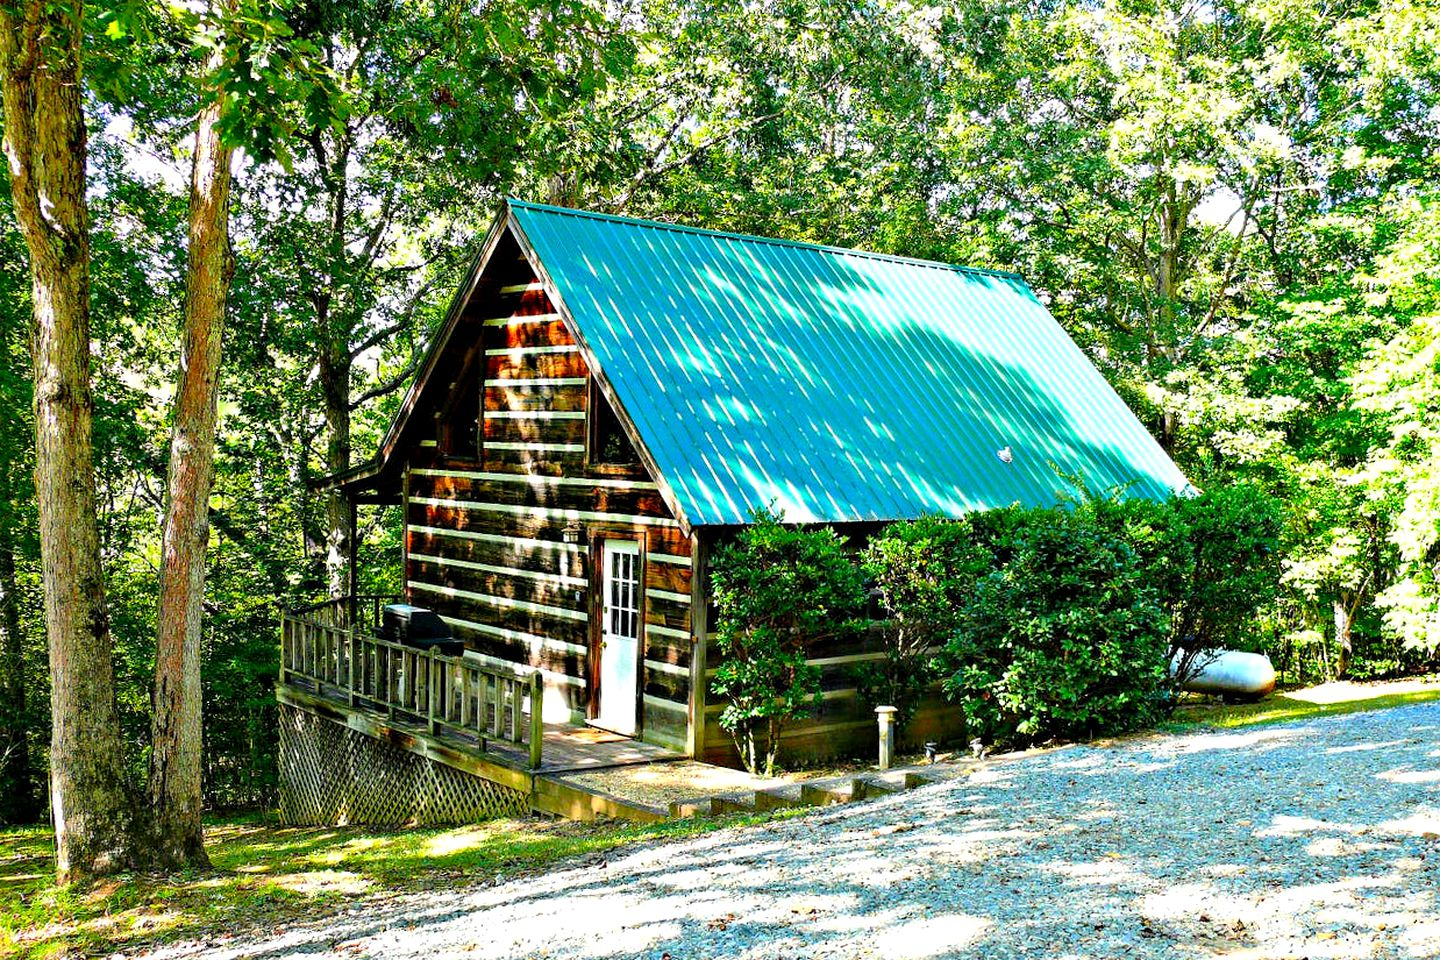 Cabins (Copperhill, Tennessee, United States)